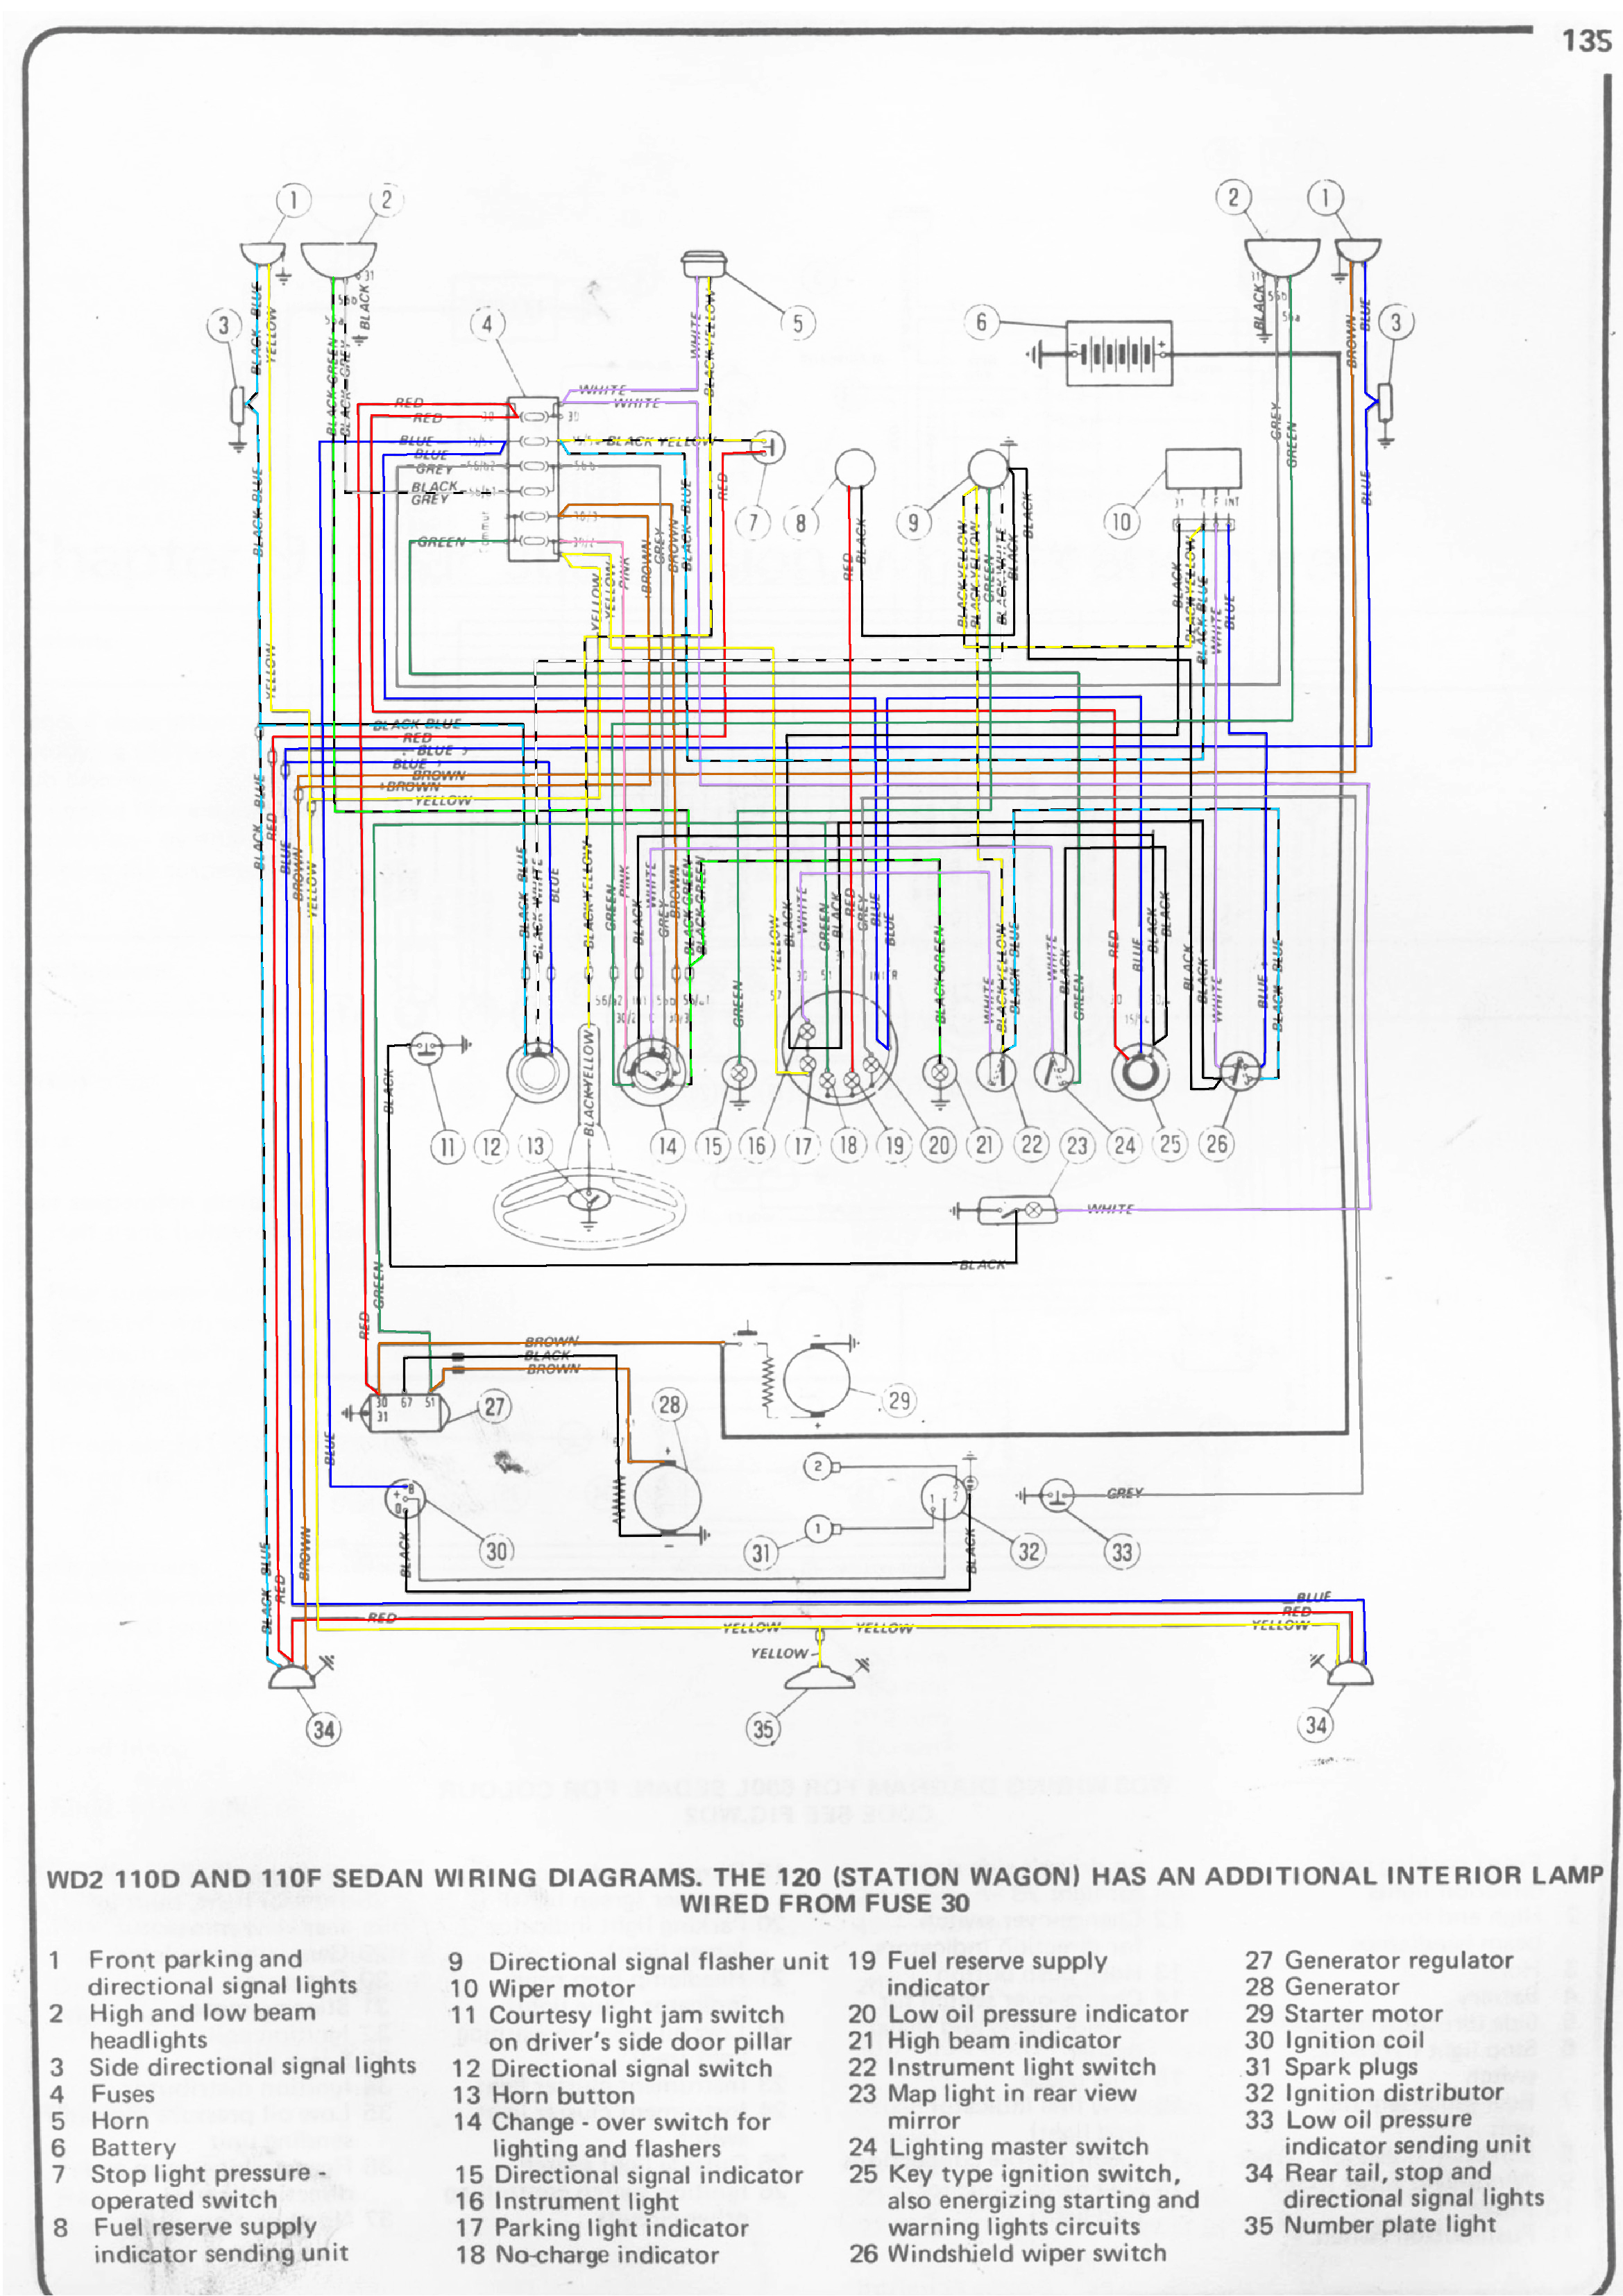 Vauxhall Combo Rear Light Wiring Diagram Online Schematics Switch Schematic Diagrams 2